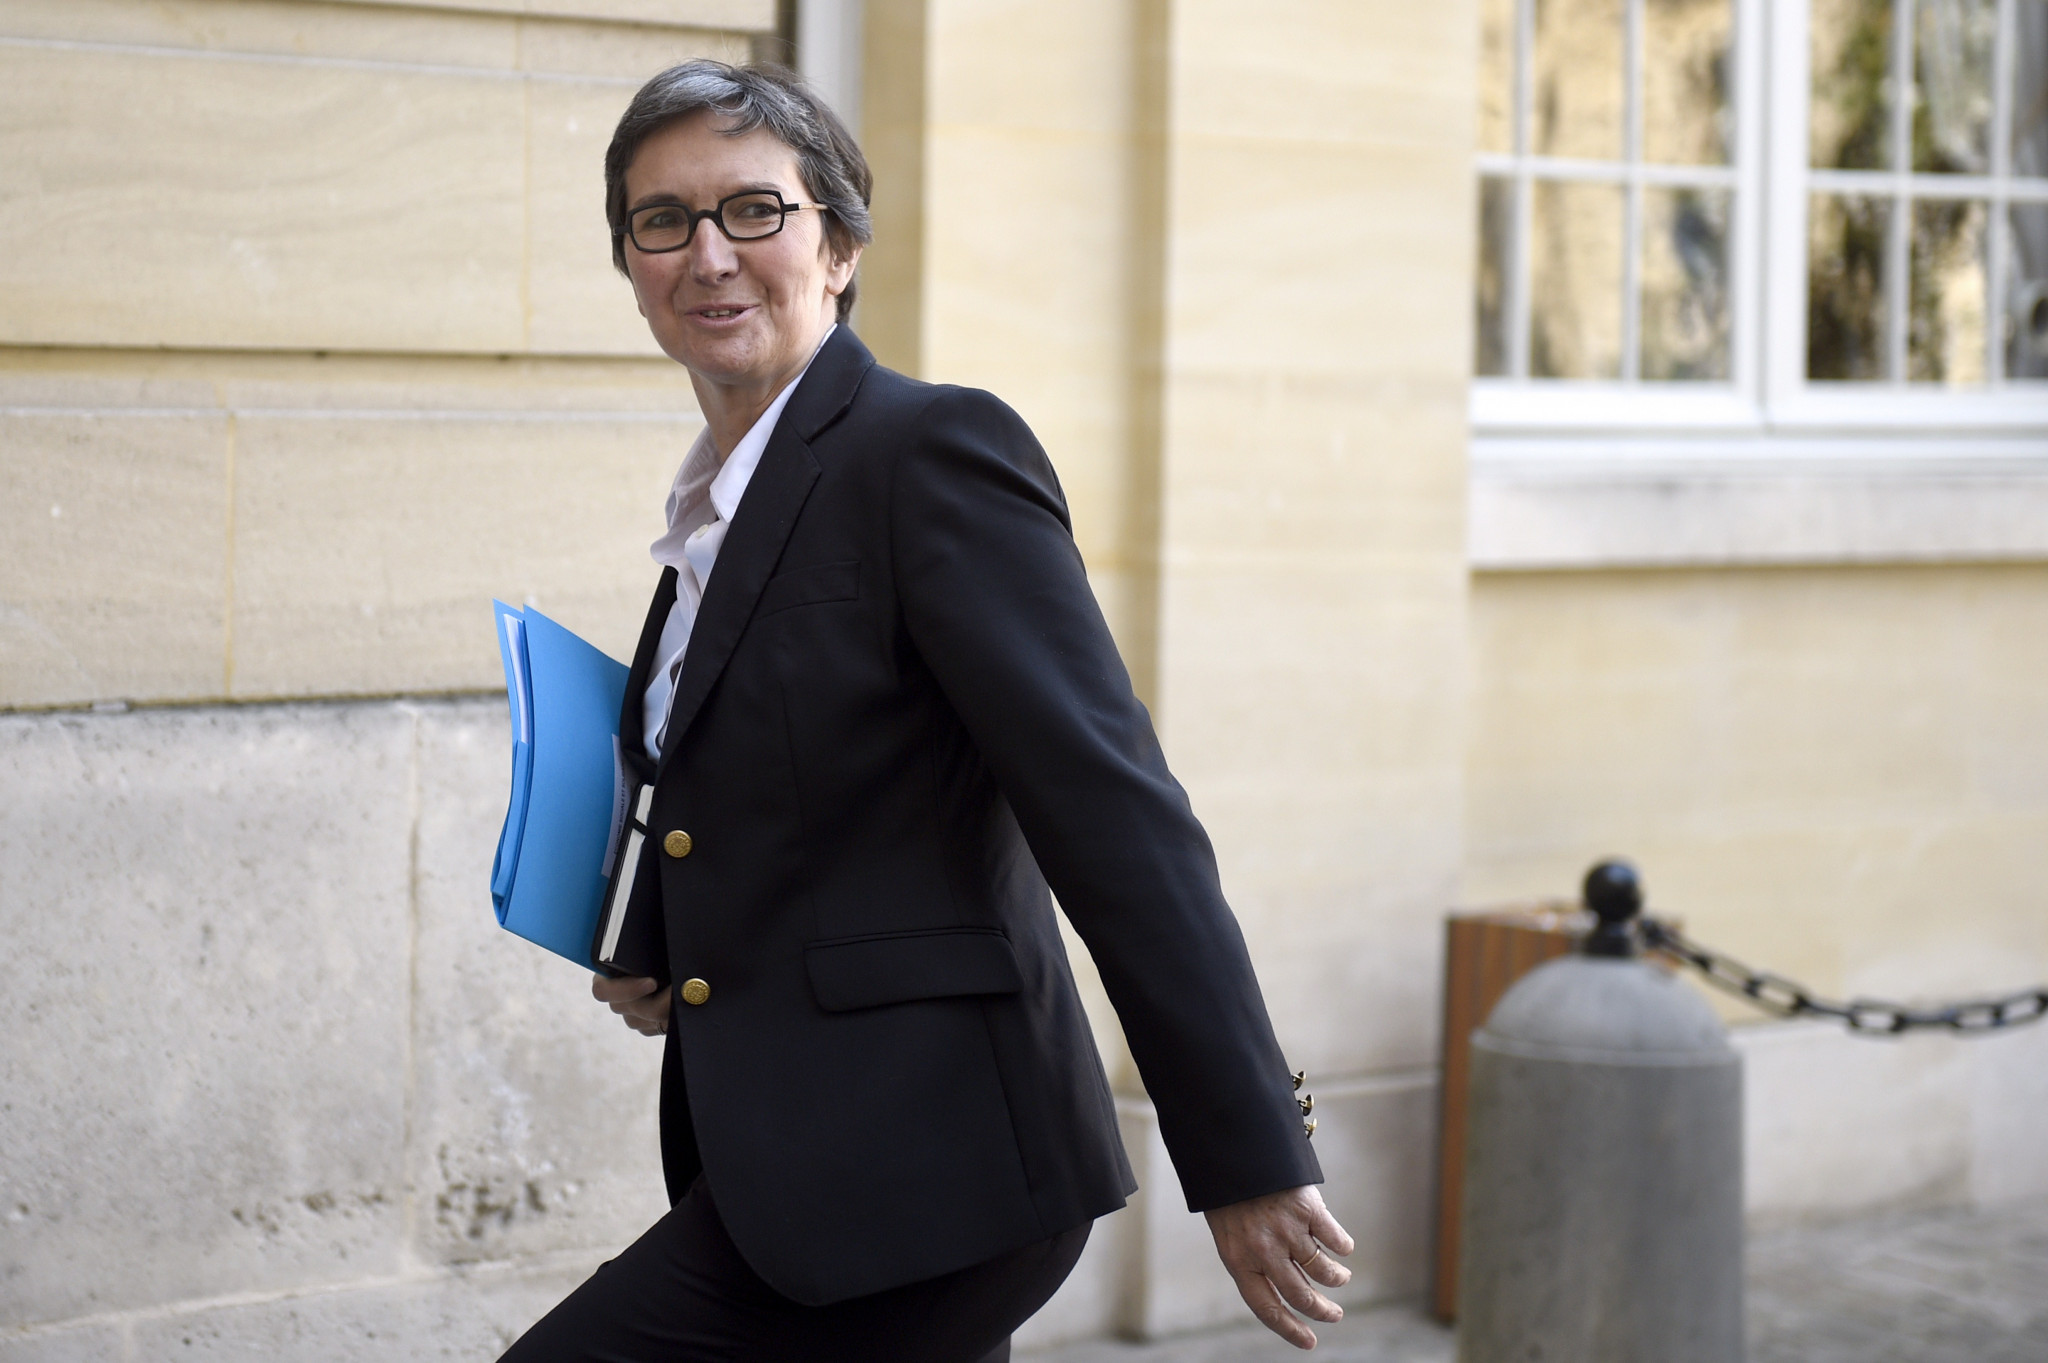 Valérie Fourneyron is chair of the IOC panel making eligibility decisions ©Getty Images